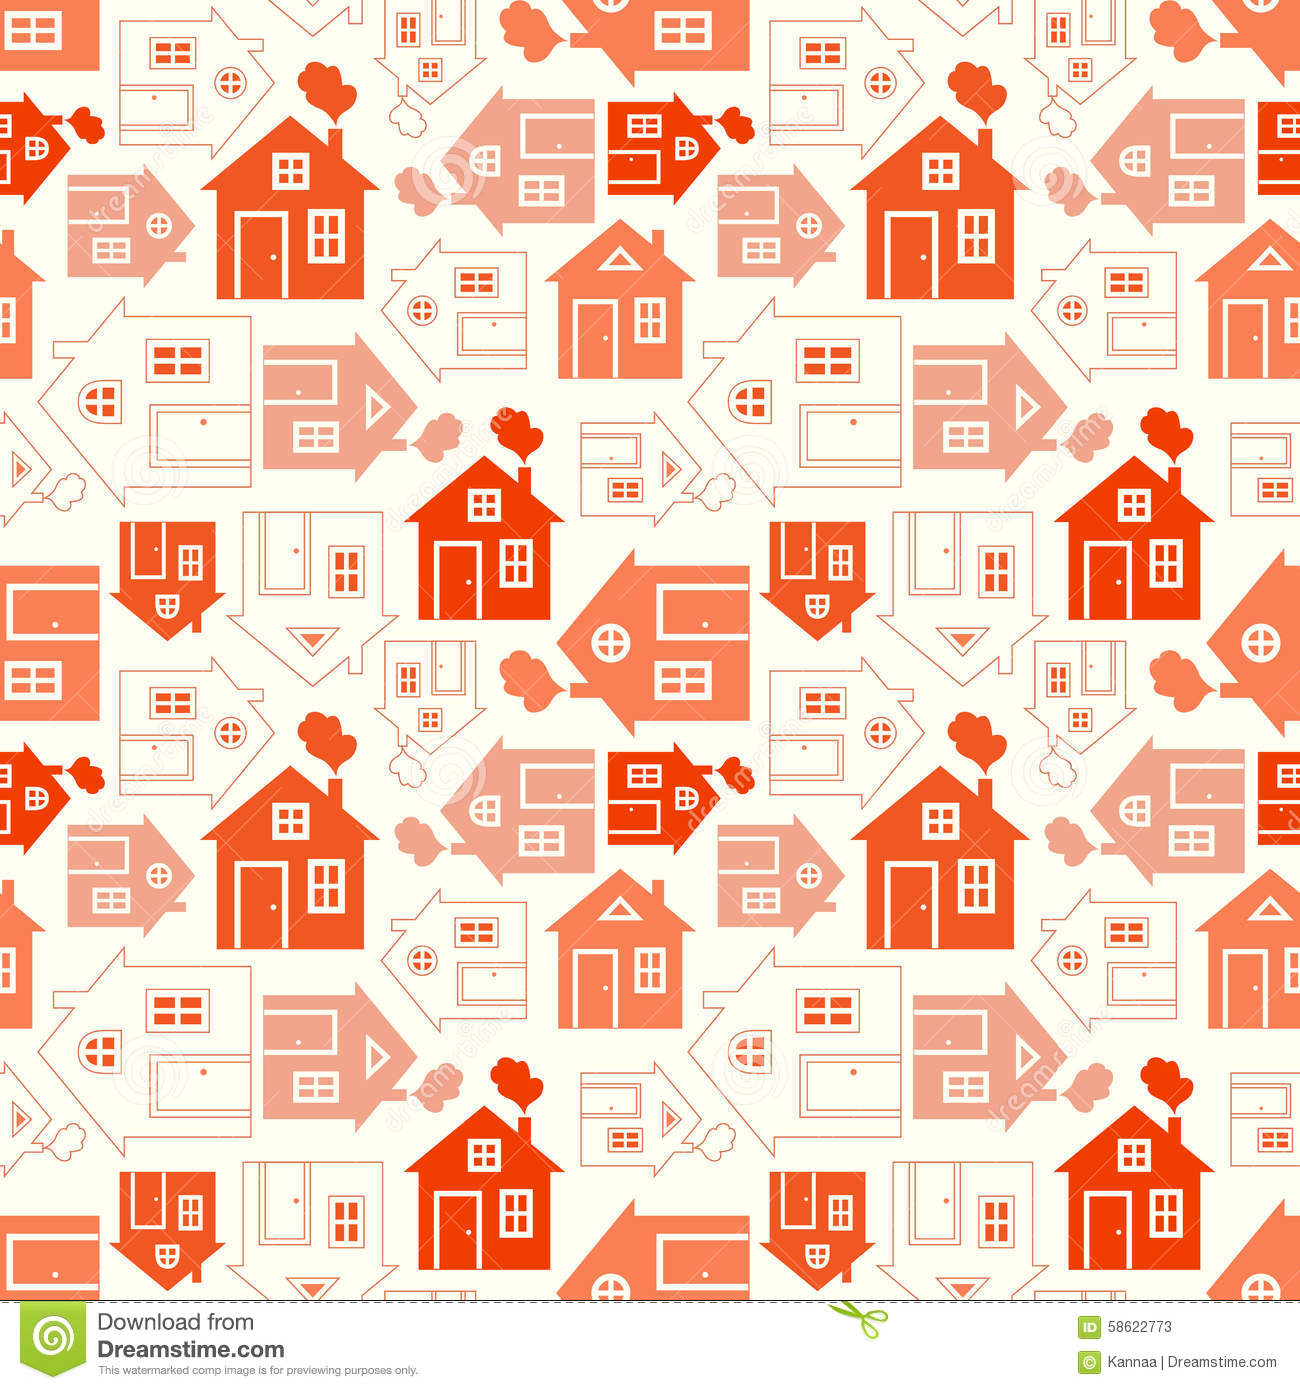 Home sweet home house silhouette clipart png download Home sweet home house silhouette clipart - ClipartFox png download